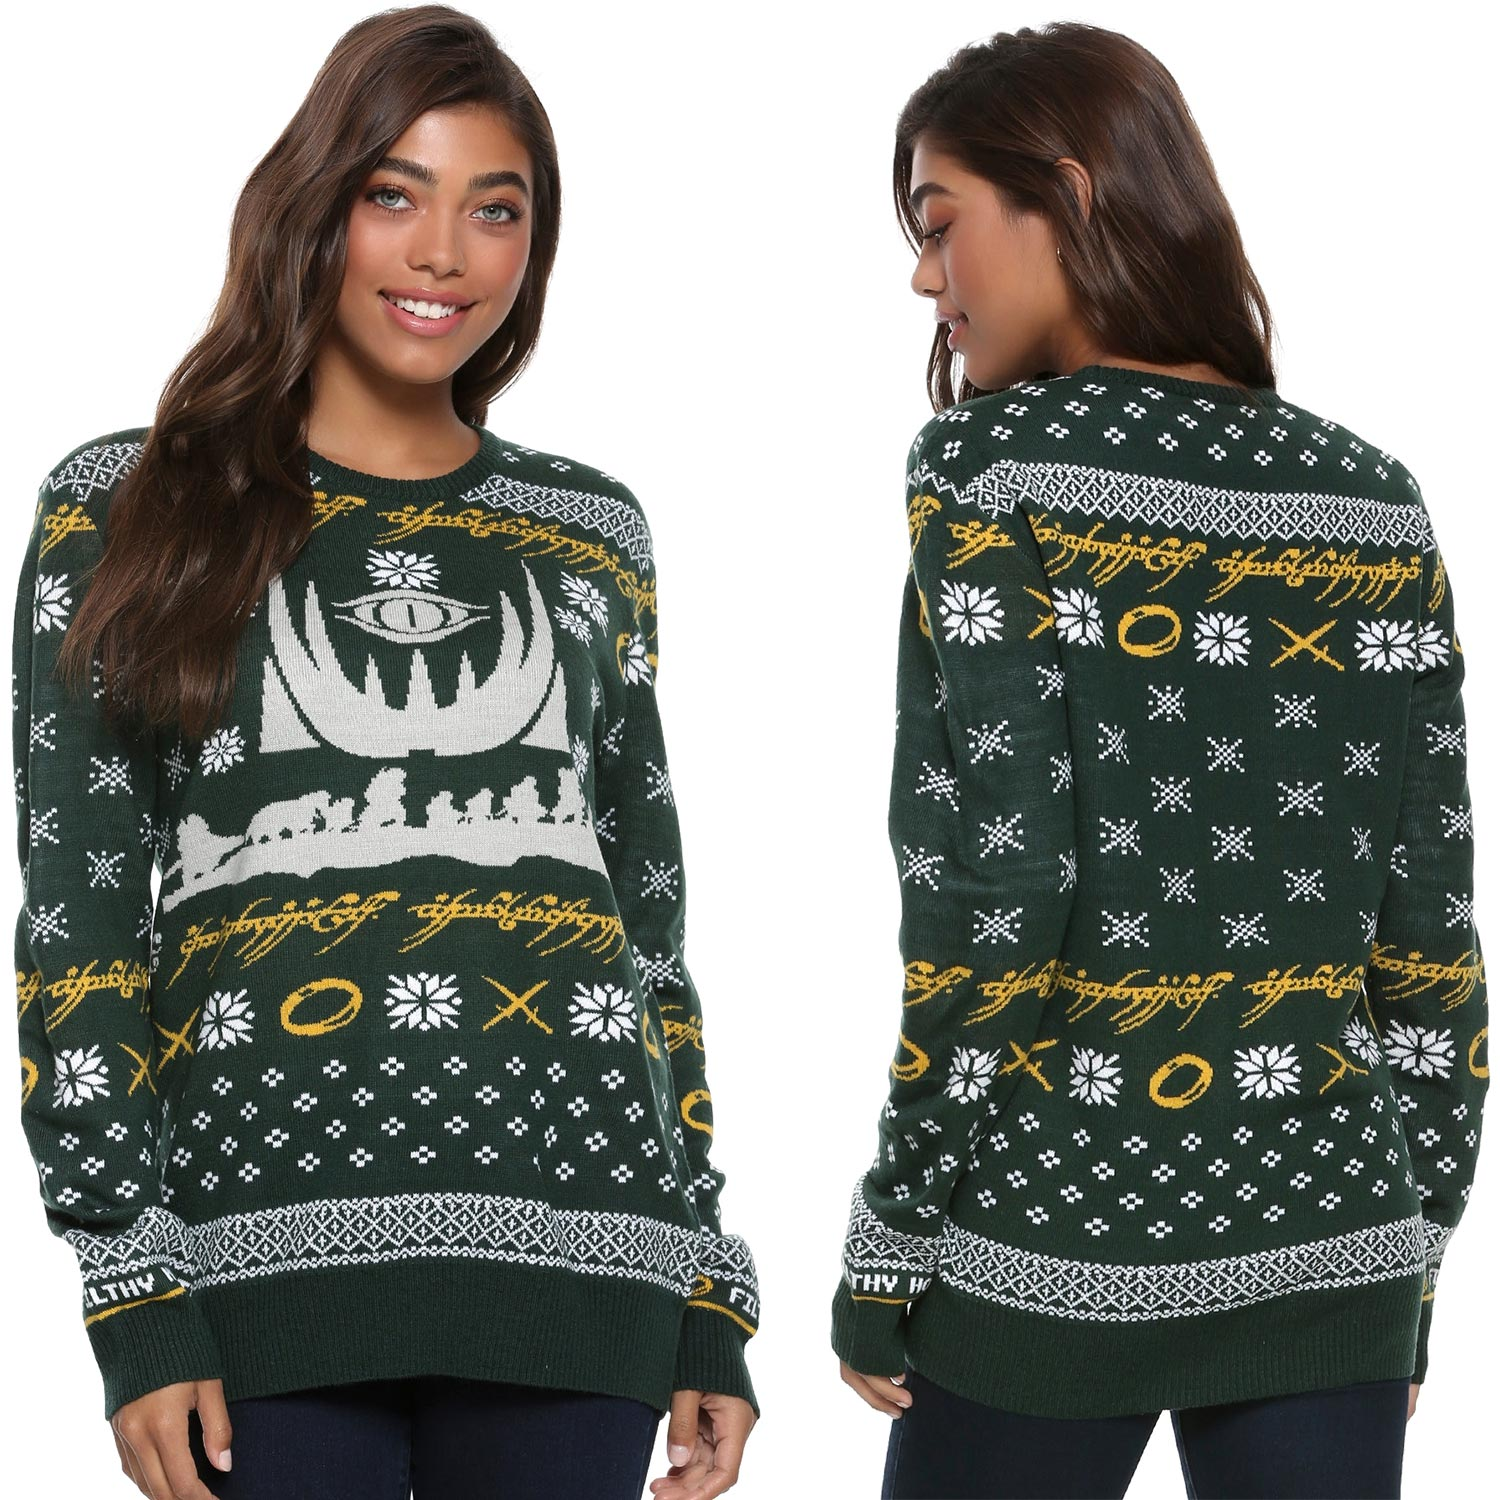 Lord Of The Rings Christmas Jumper.The Lord Of The Rings Christmas Sweater